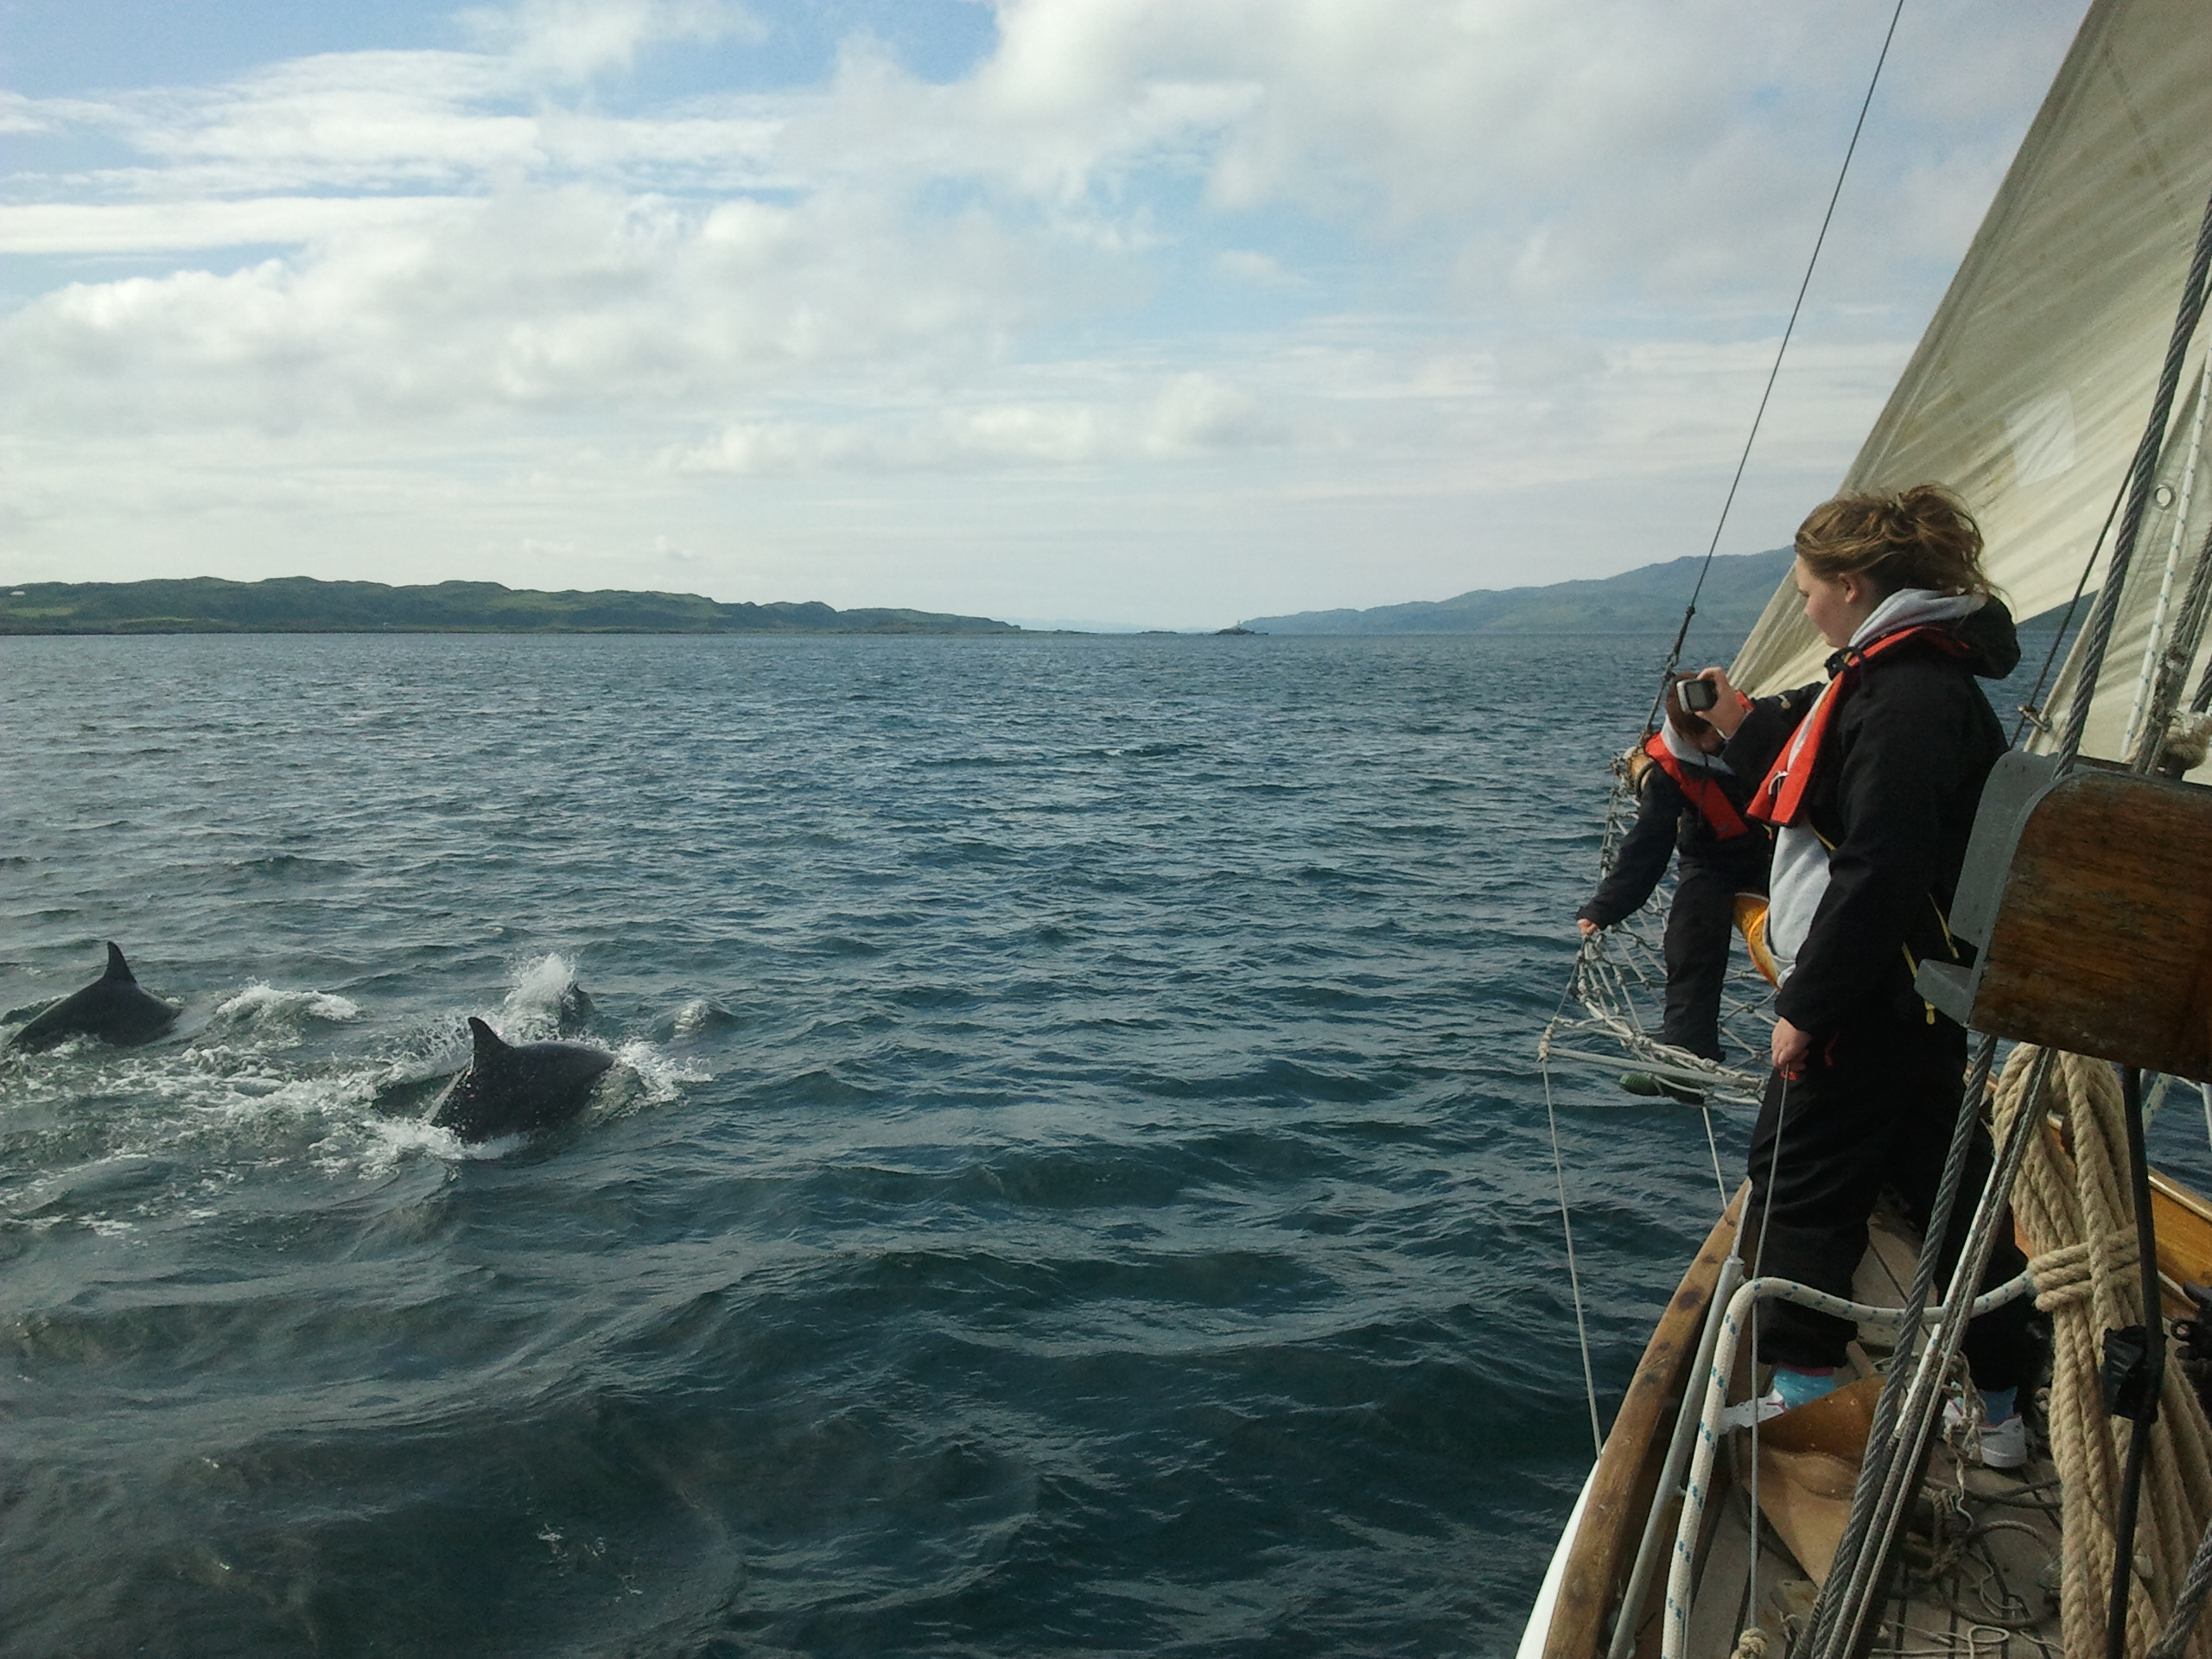 Dolphins escort Duet in the Lynn of Lorne